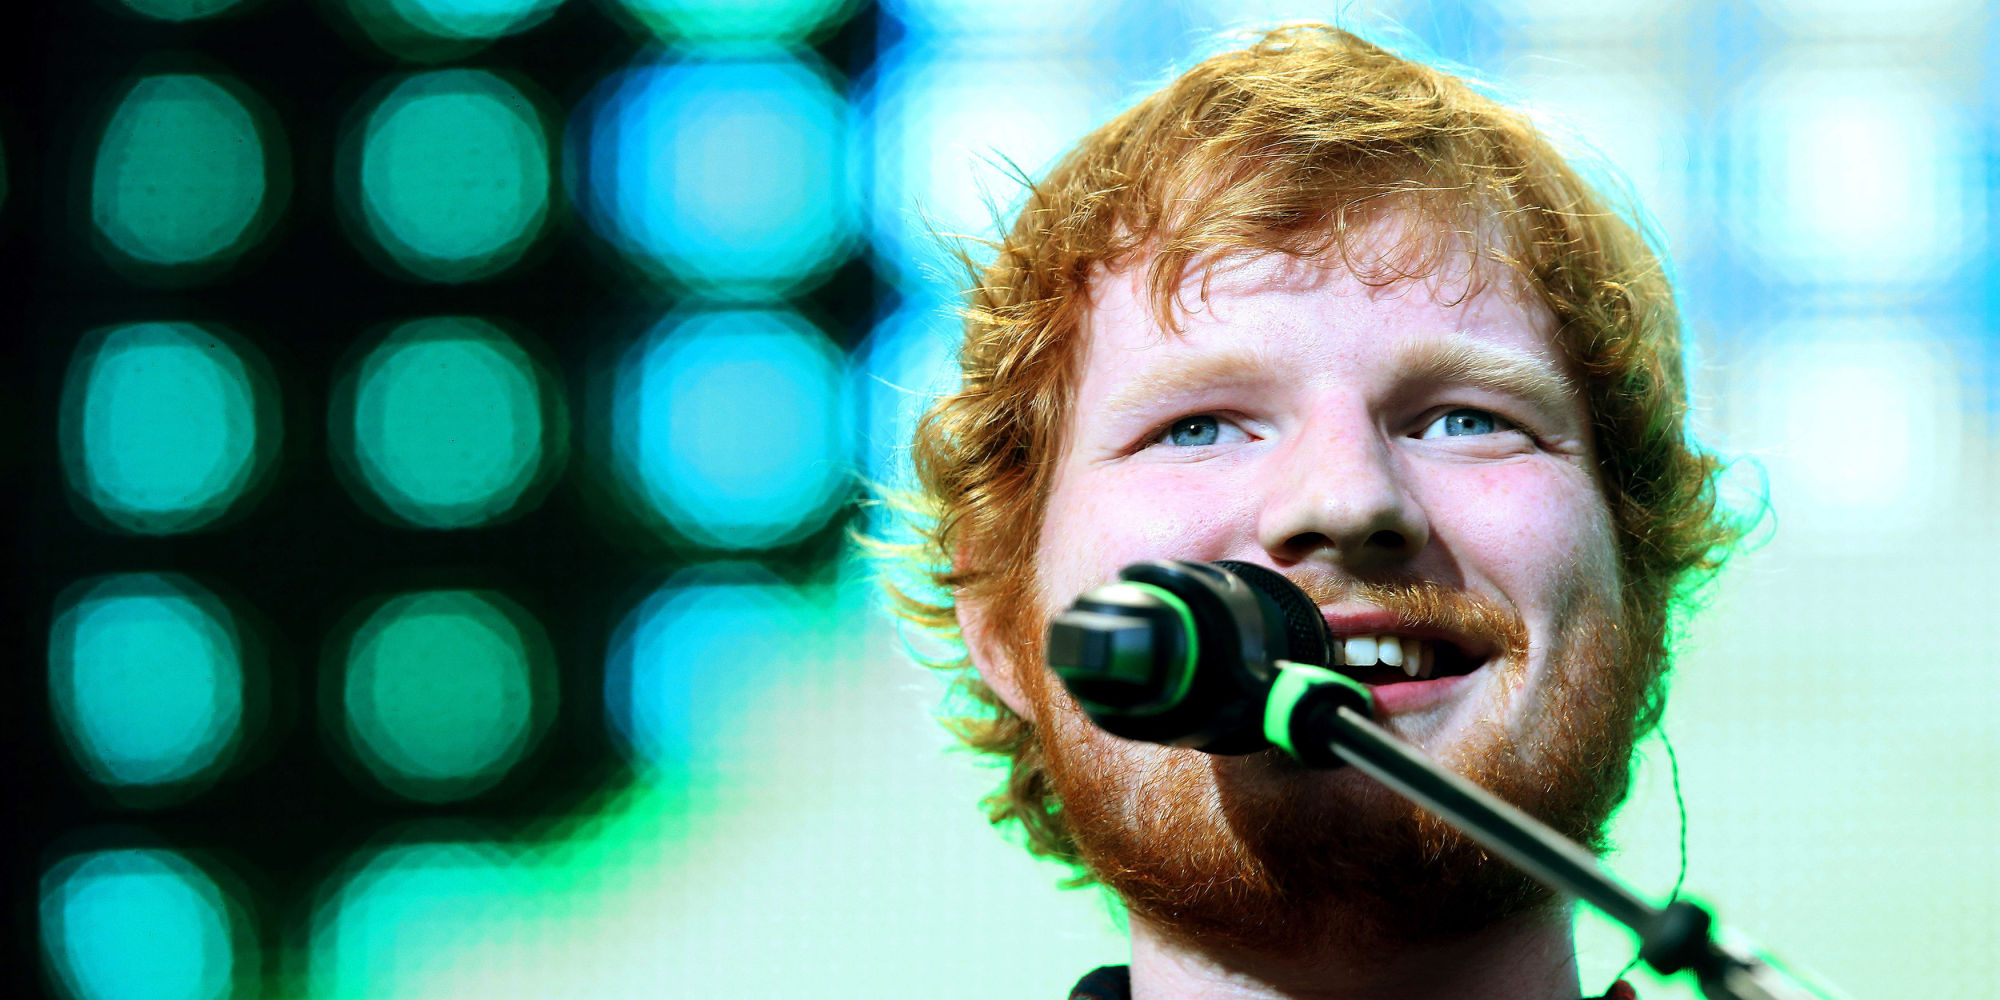 Jumpers-for-Goalposts-Ed-Sheeran-16Outubro2015-1